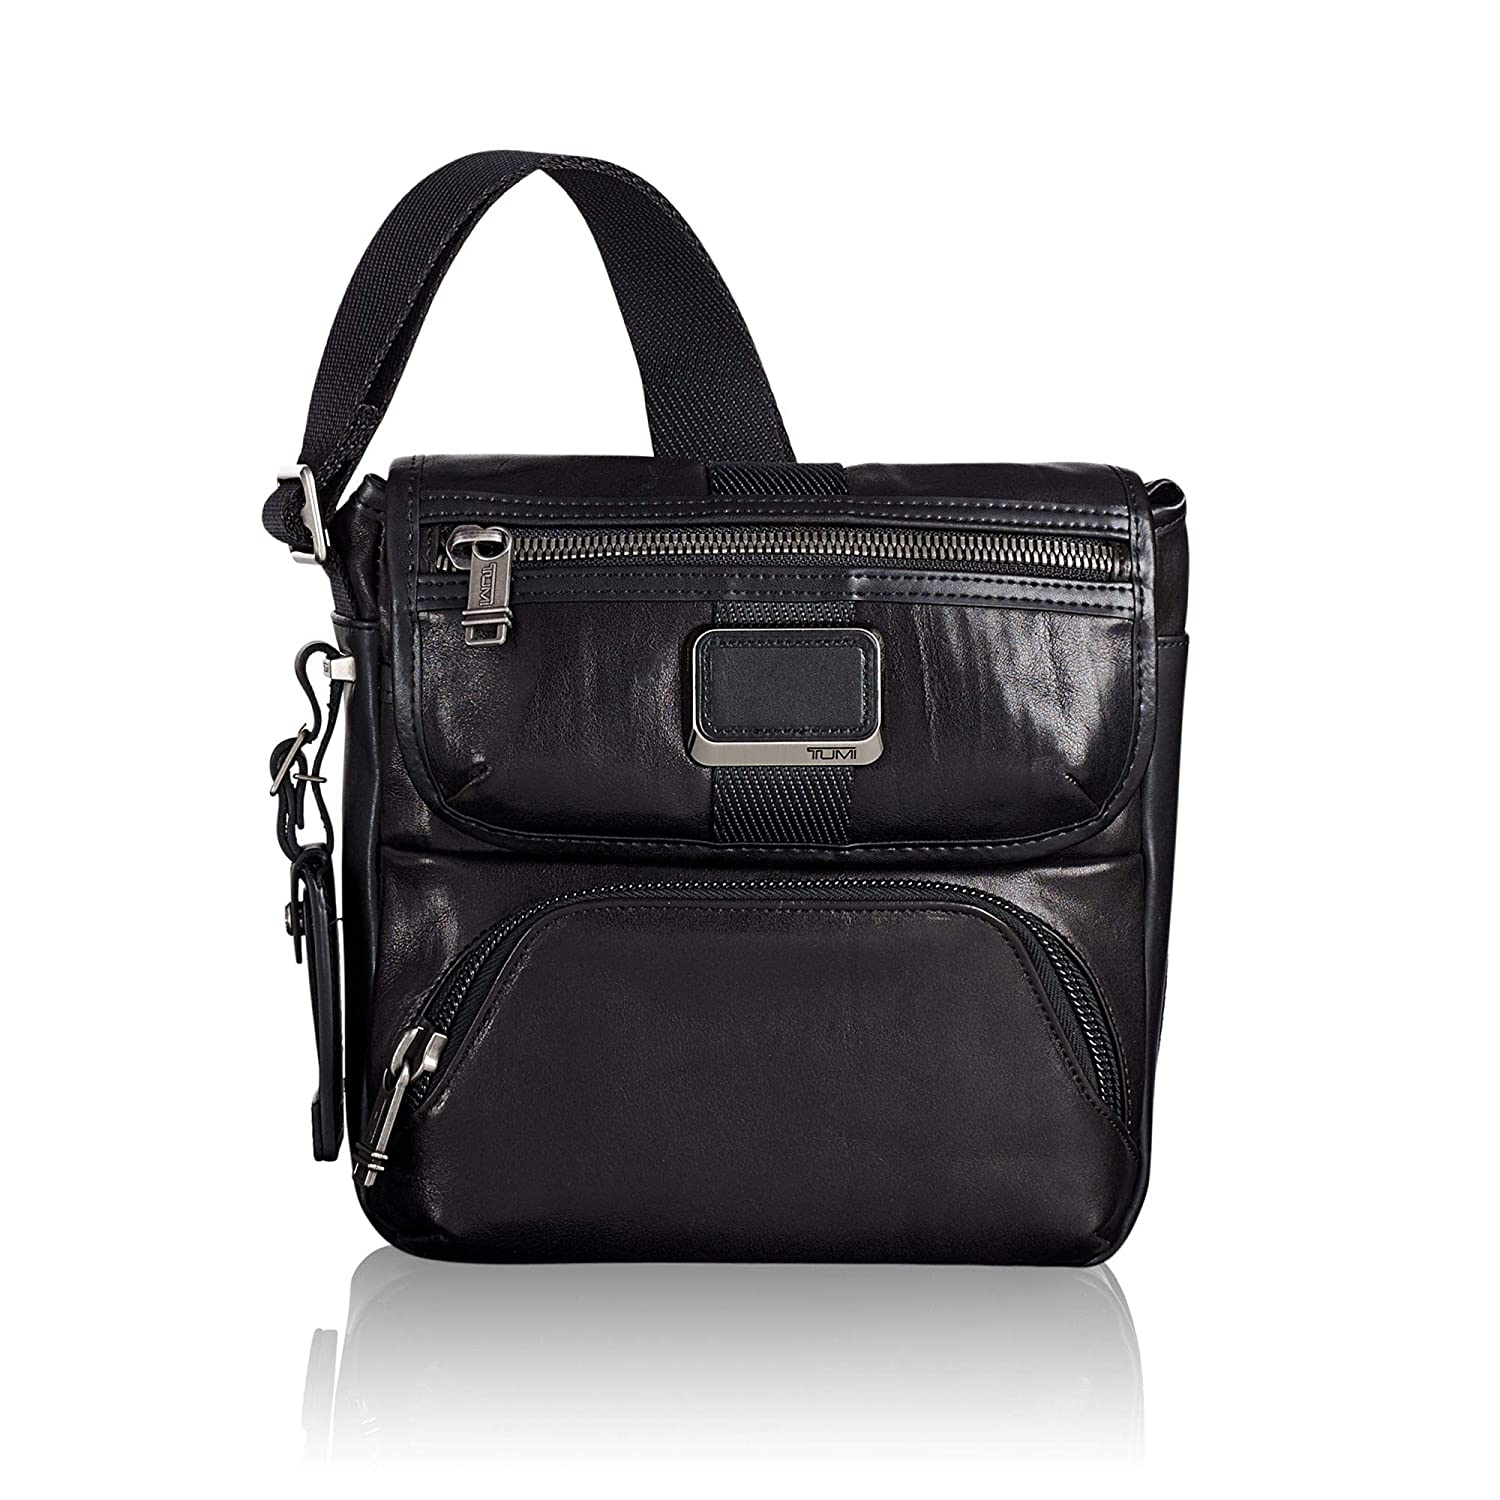 c4037b0feef7 Amazon.com  TUMI - Alpha Bravo Barton Crossbody Bag - Leather Satchel for  Men and Women - Black